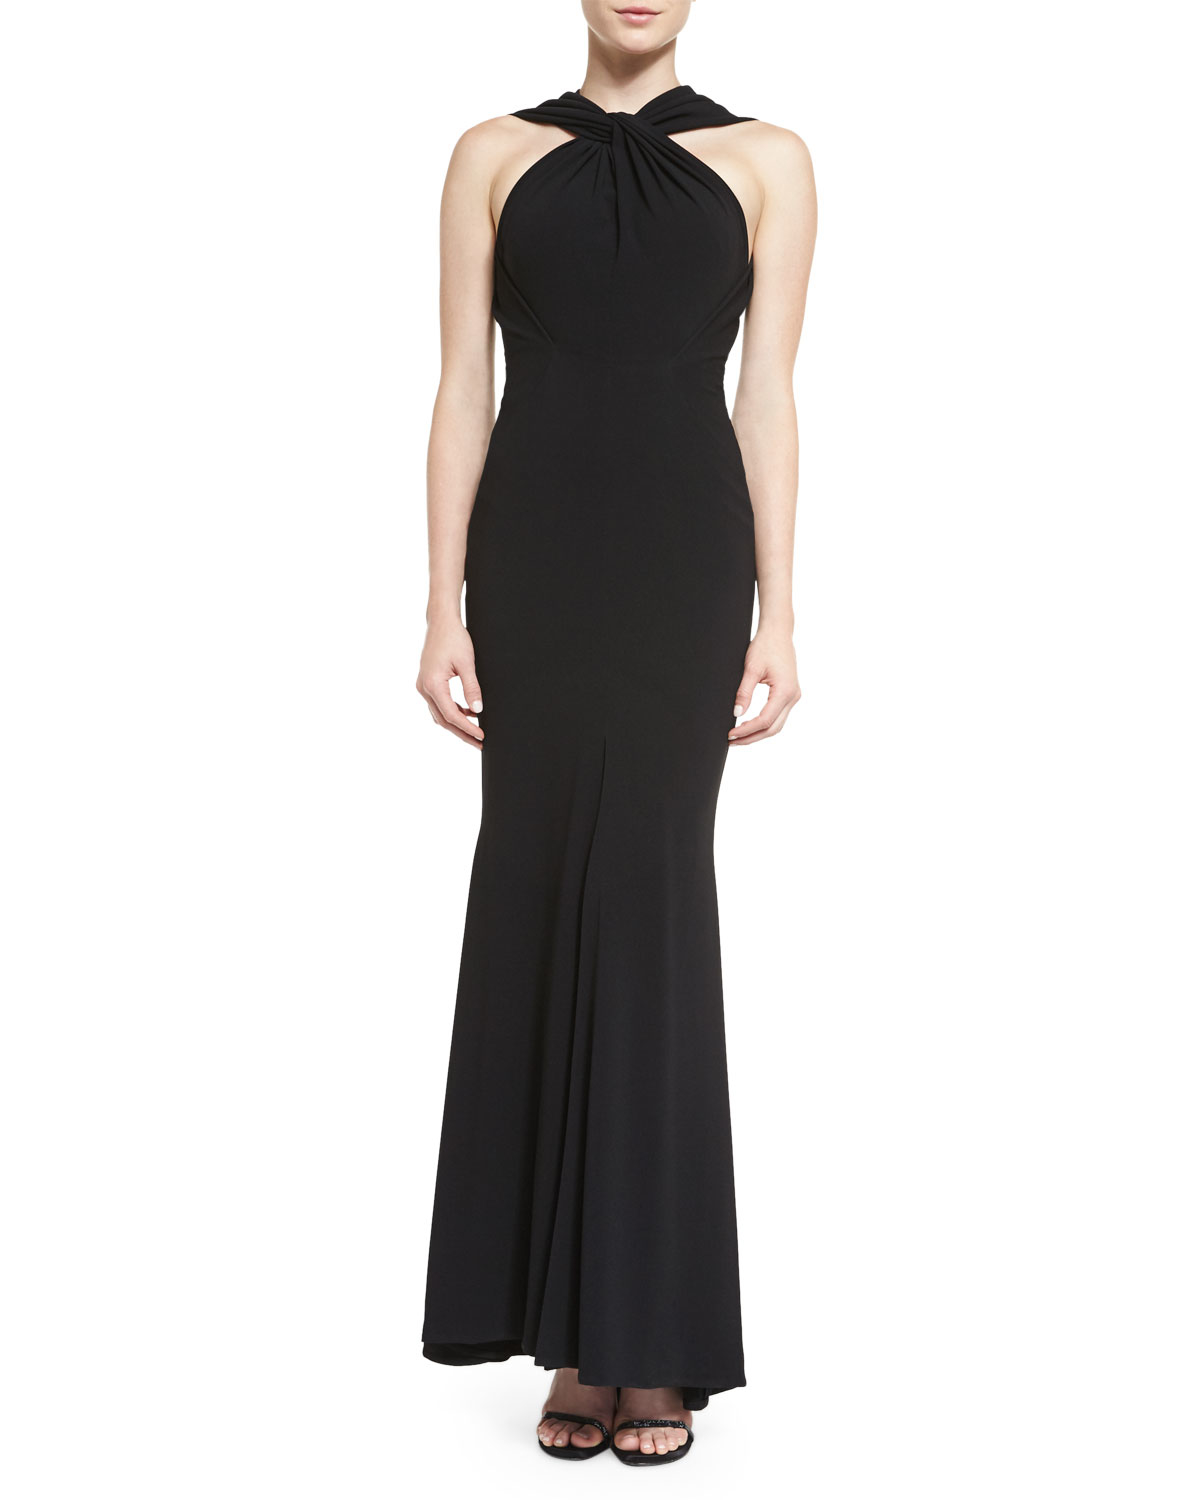 talbot runhof golatta v neck gown in black lyst. Black Bedroom Furniture Sets. Home Design Ideas